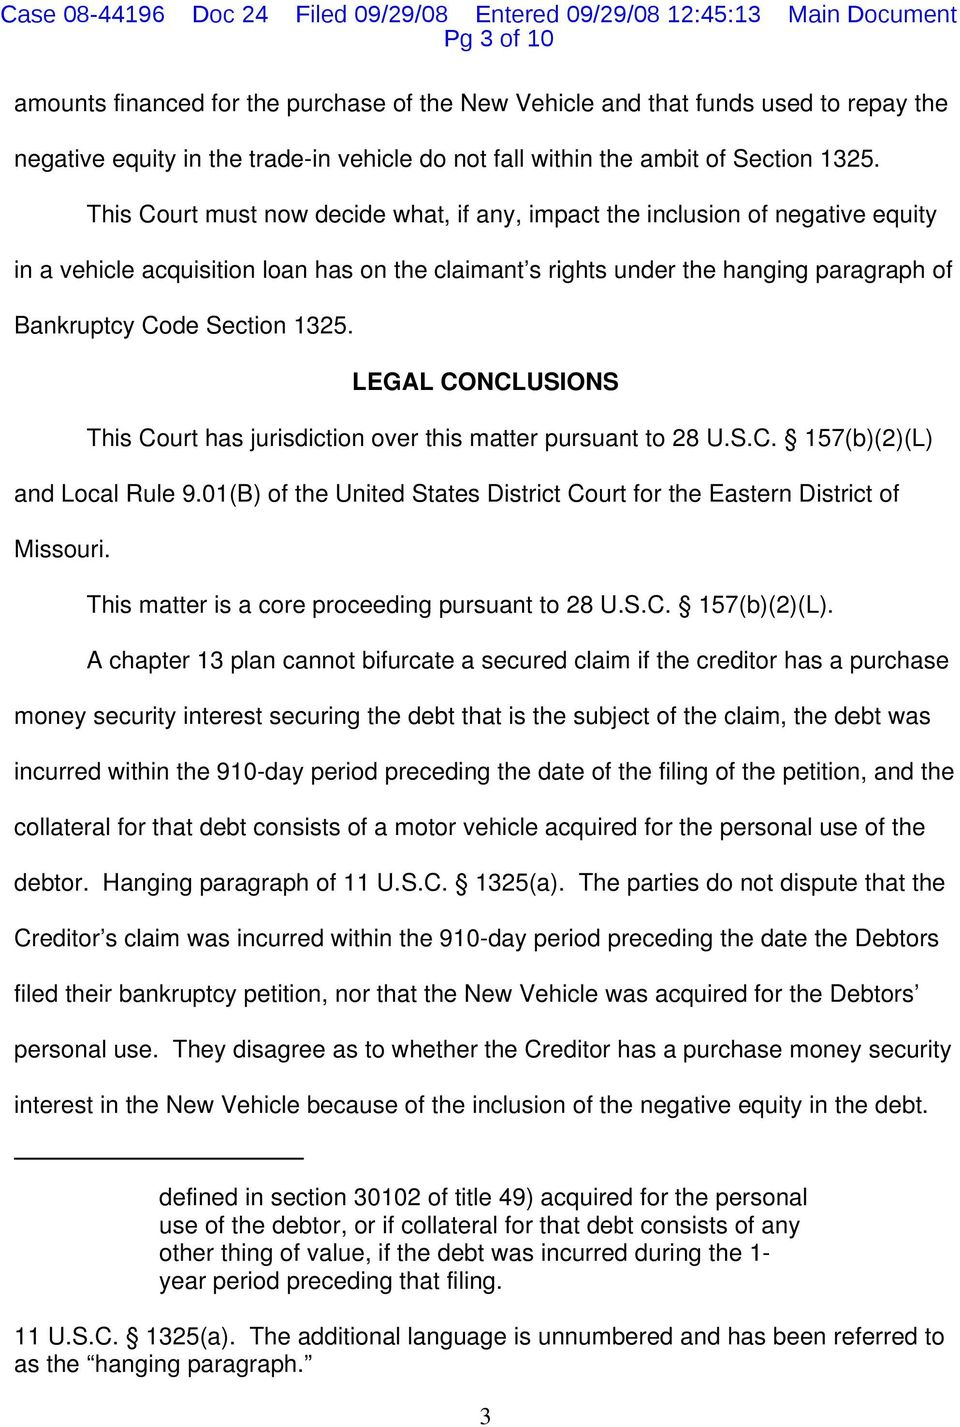 LEGAL CONCLUSIONS This Court has jurisdiction over this matter pursuant to 28 U.S.C. 157(b)(2)(L) and Local Rule 9.01(B) of the United States District Court for the Eastern District of Missouri.